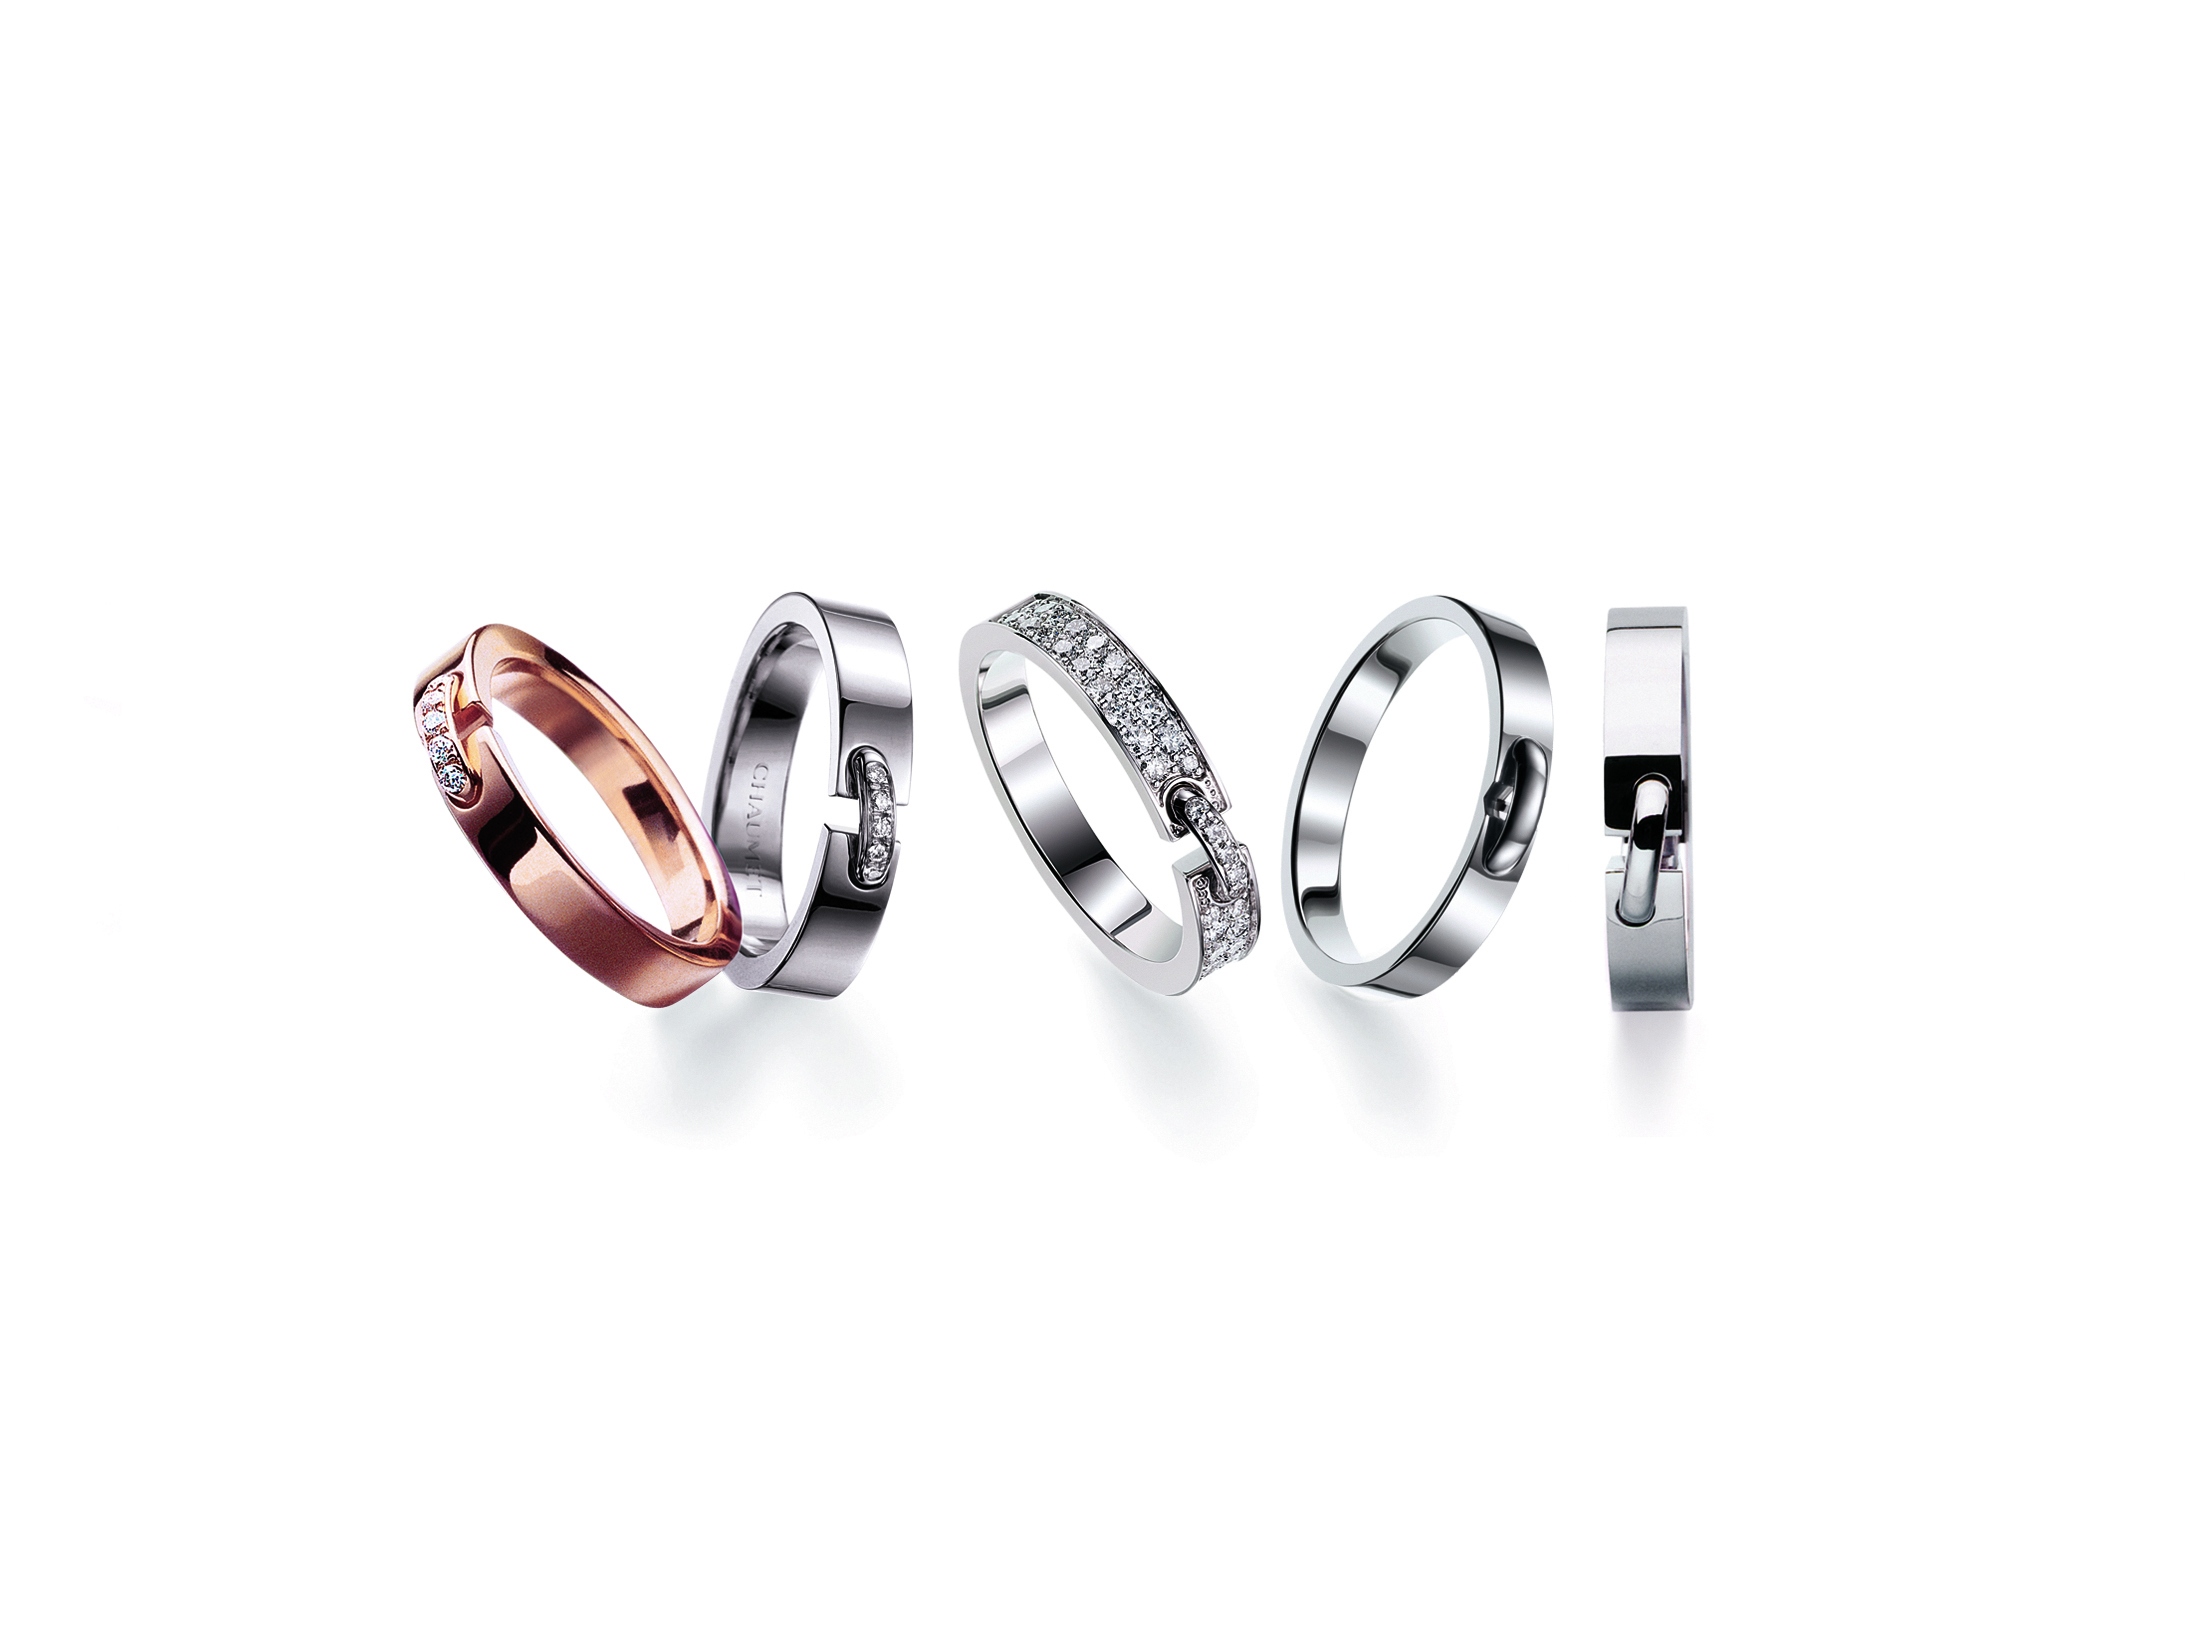 510933be3 ... and passion since 1780, when Napoleon and Josephine's love inspired the  Maison's founder Nitot to create precious engagement rings, wedding bands,  ...